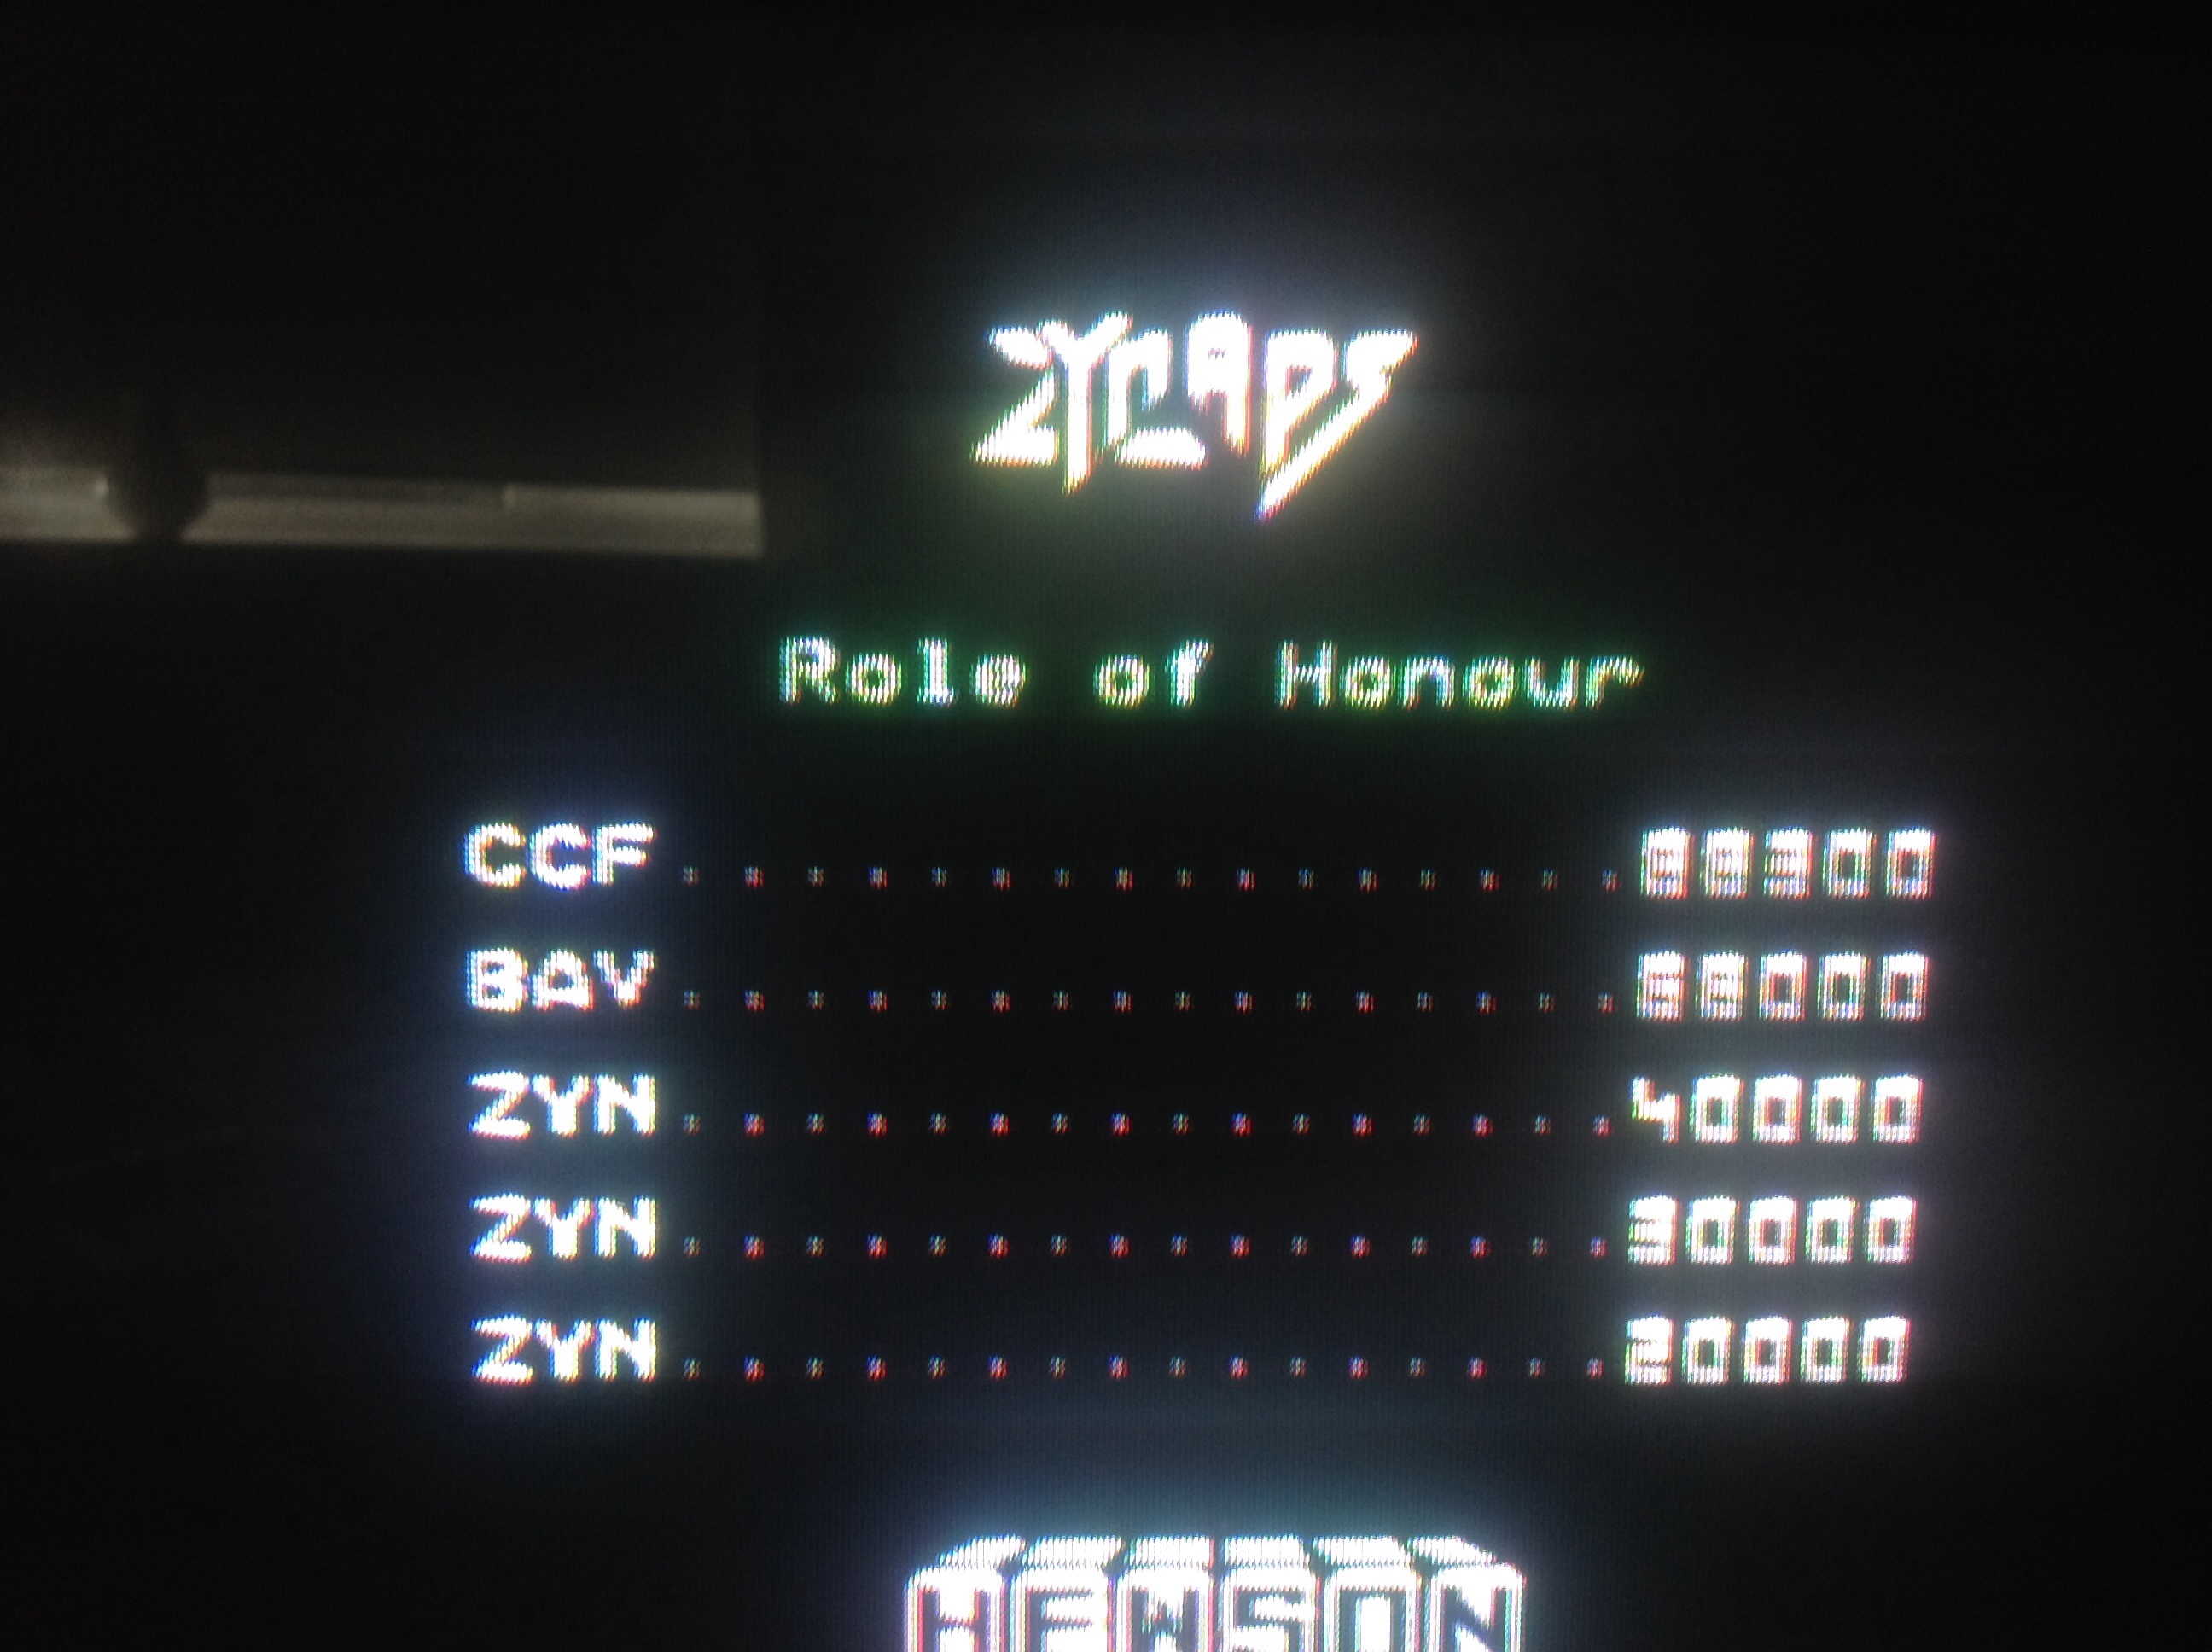 CoCoForest: Zynaps (Commodore 64) 88,300 points on 2014-08-02 12:29:21